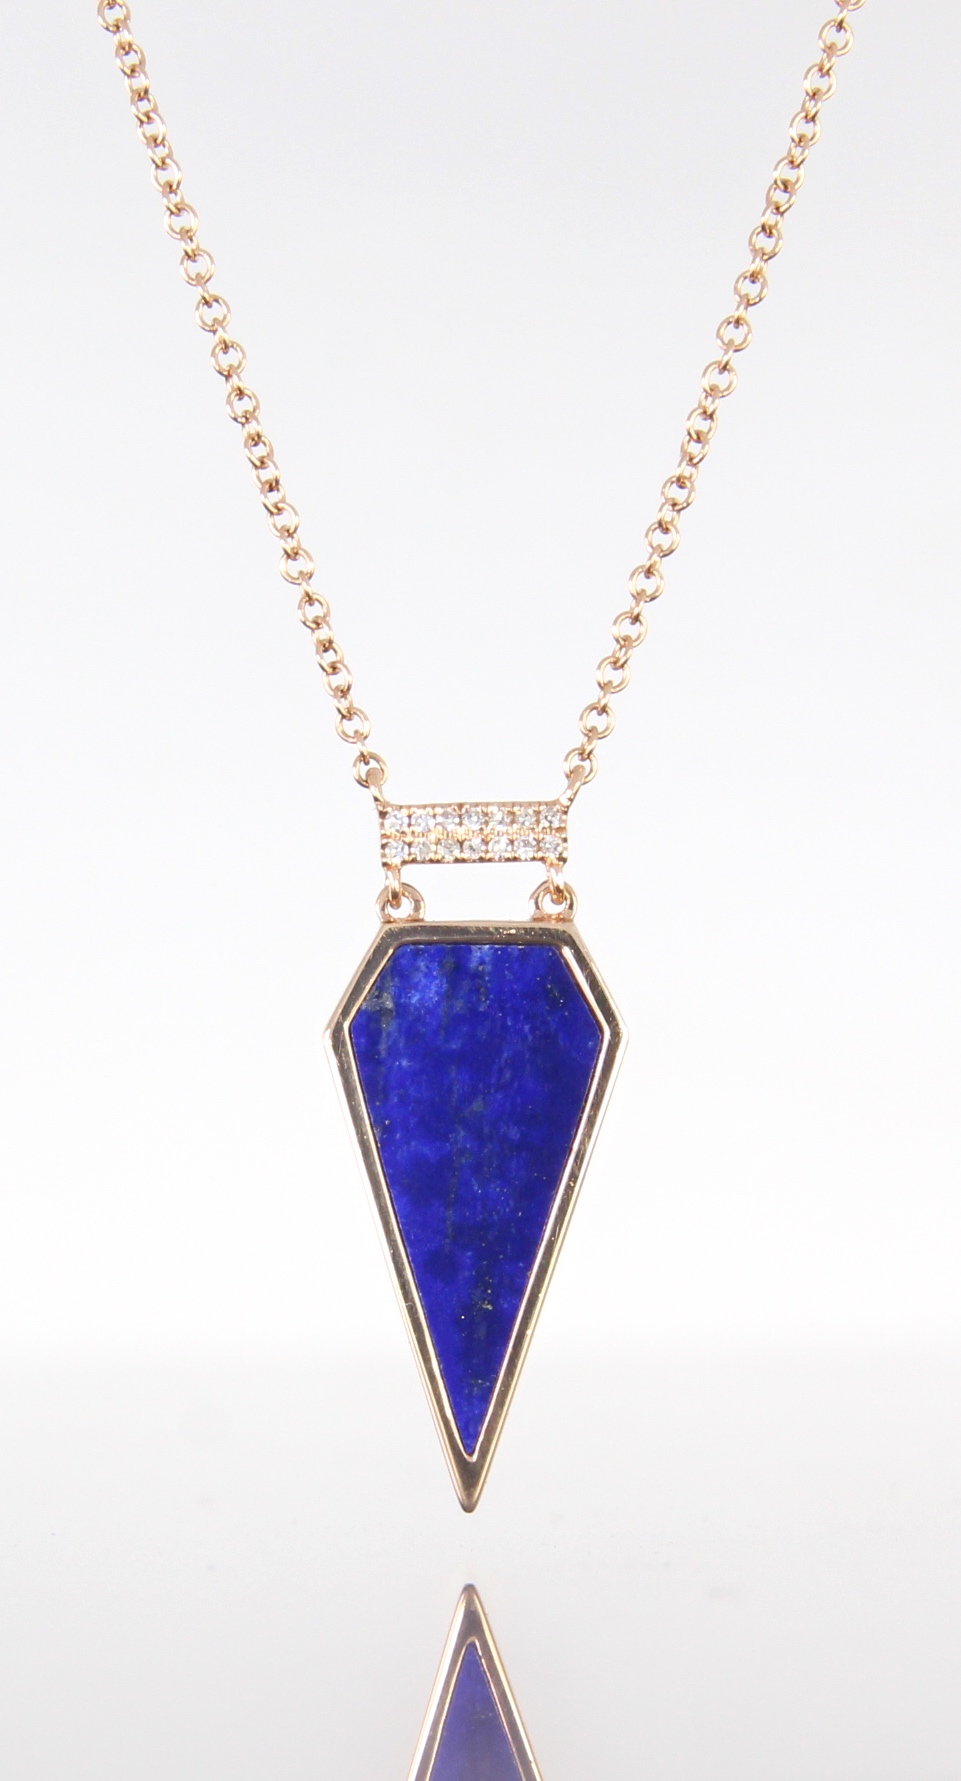 rose-gold-lapis-diamond-necklace-craft-revival-jewelry-store-grand-rapids.jpg